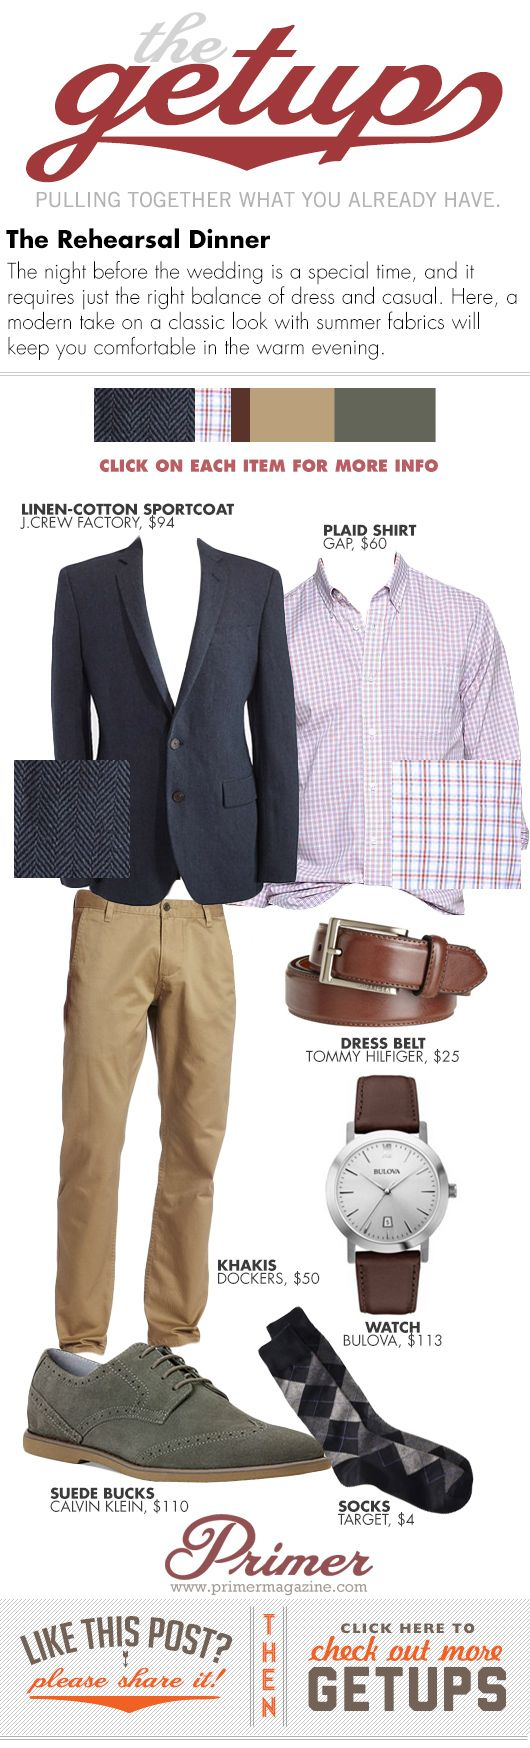 The Getup: The Rehearsal Dinner - Primer (Definitely a look I would do for my Rehearsal Dinner 2015)